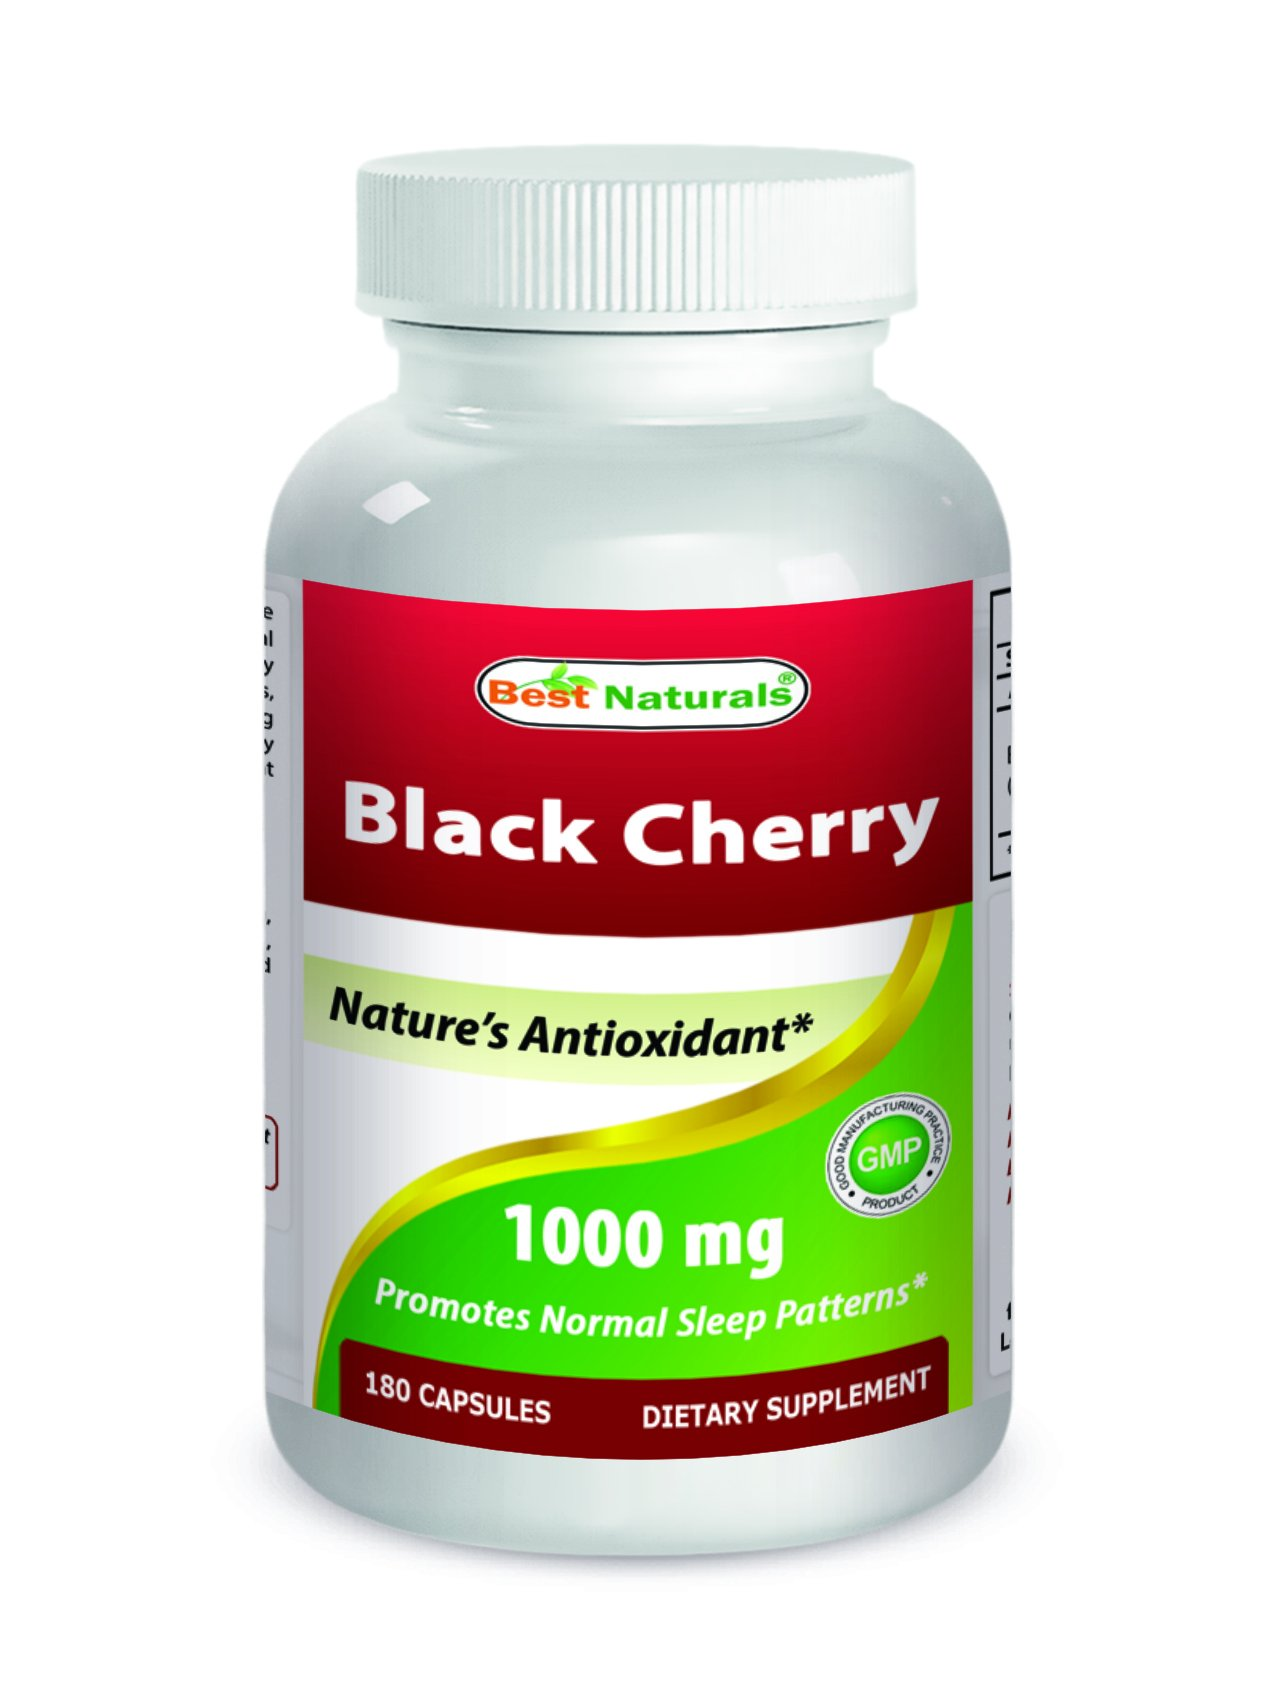 Best Naturals Black Cherry 1000 Mg Capsule, 180 Count